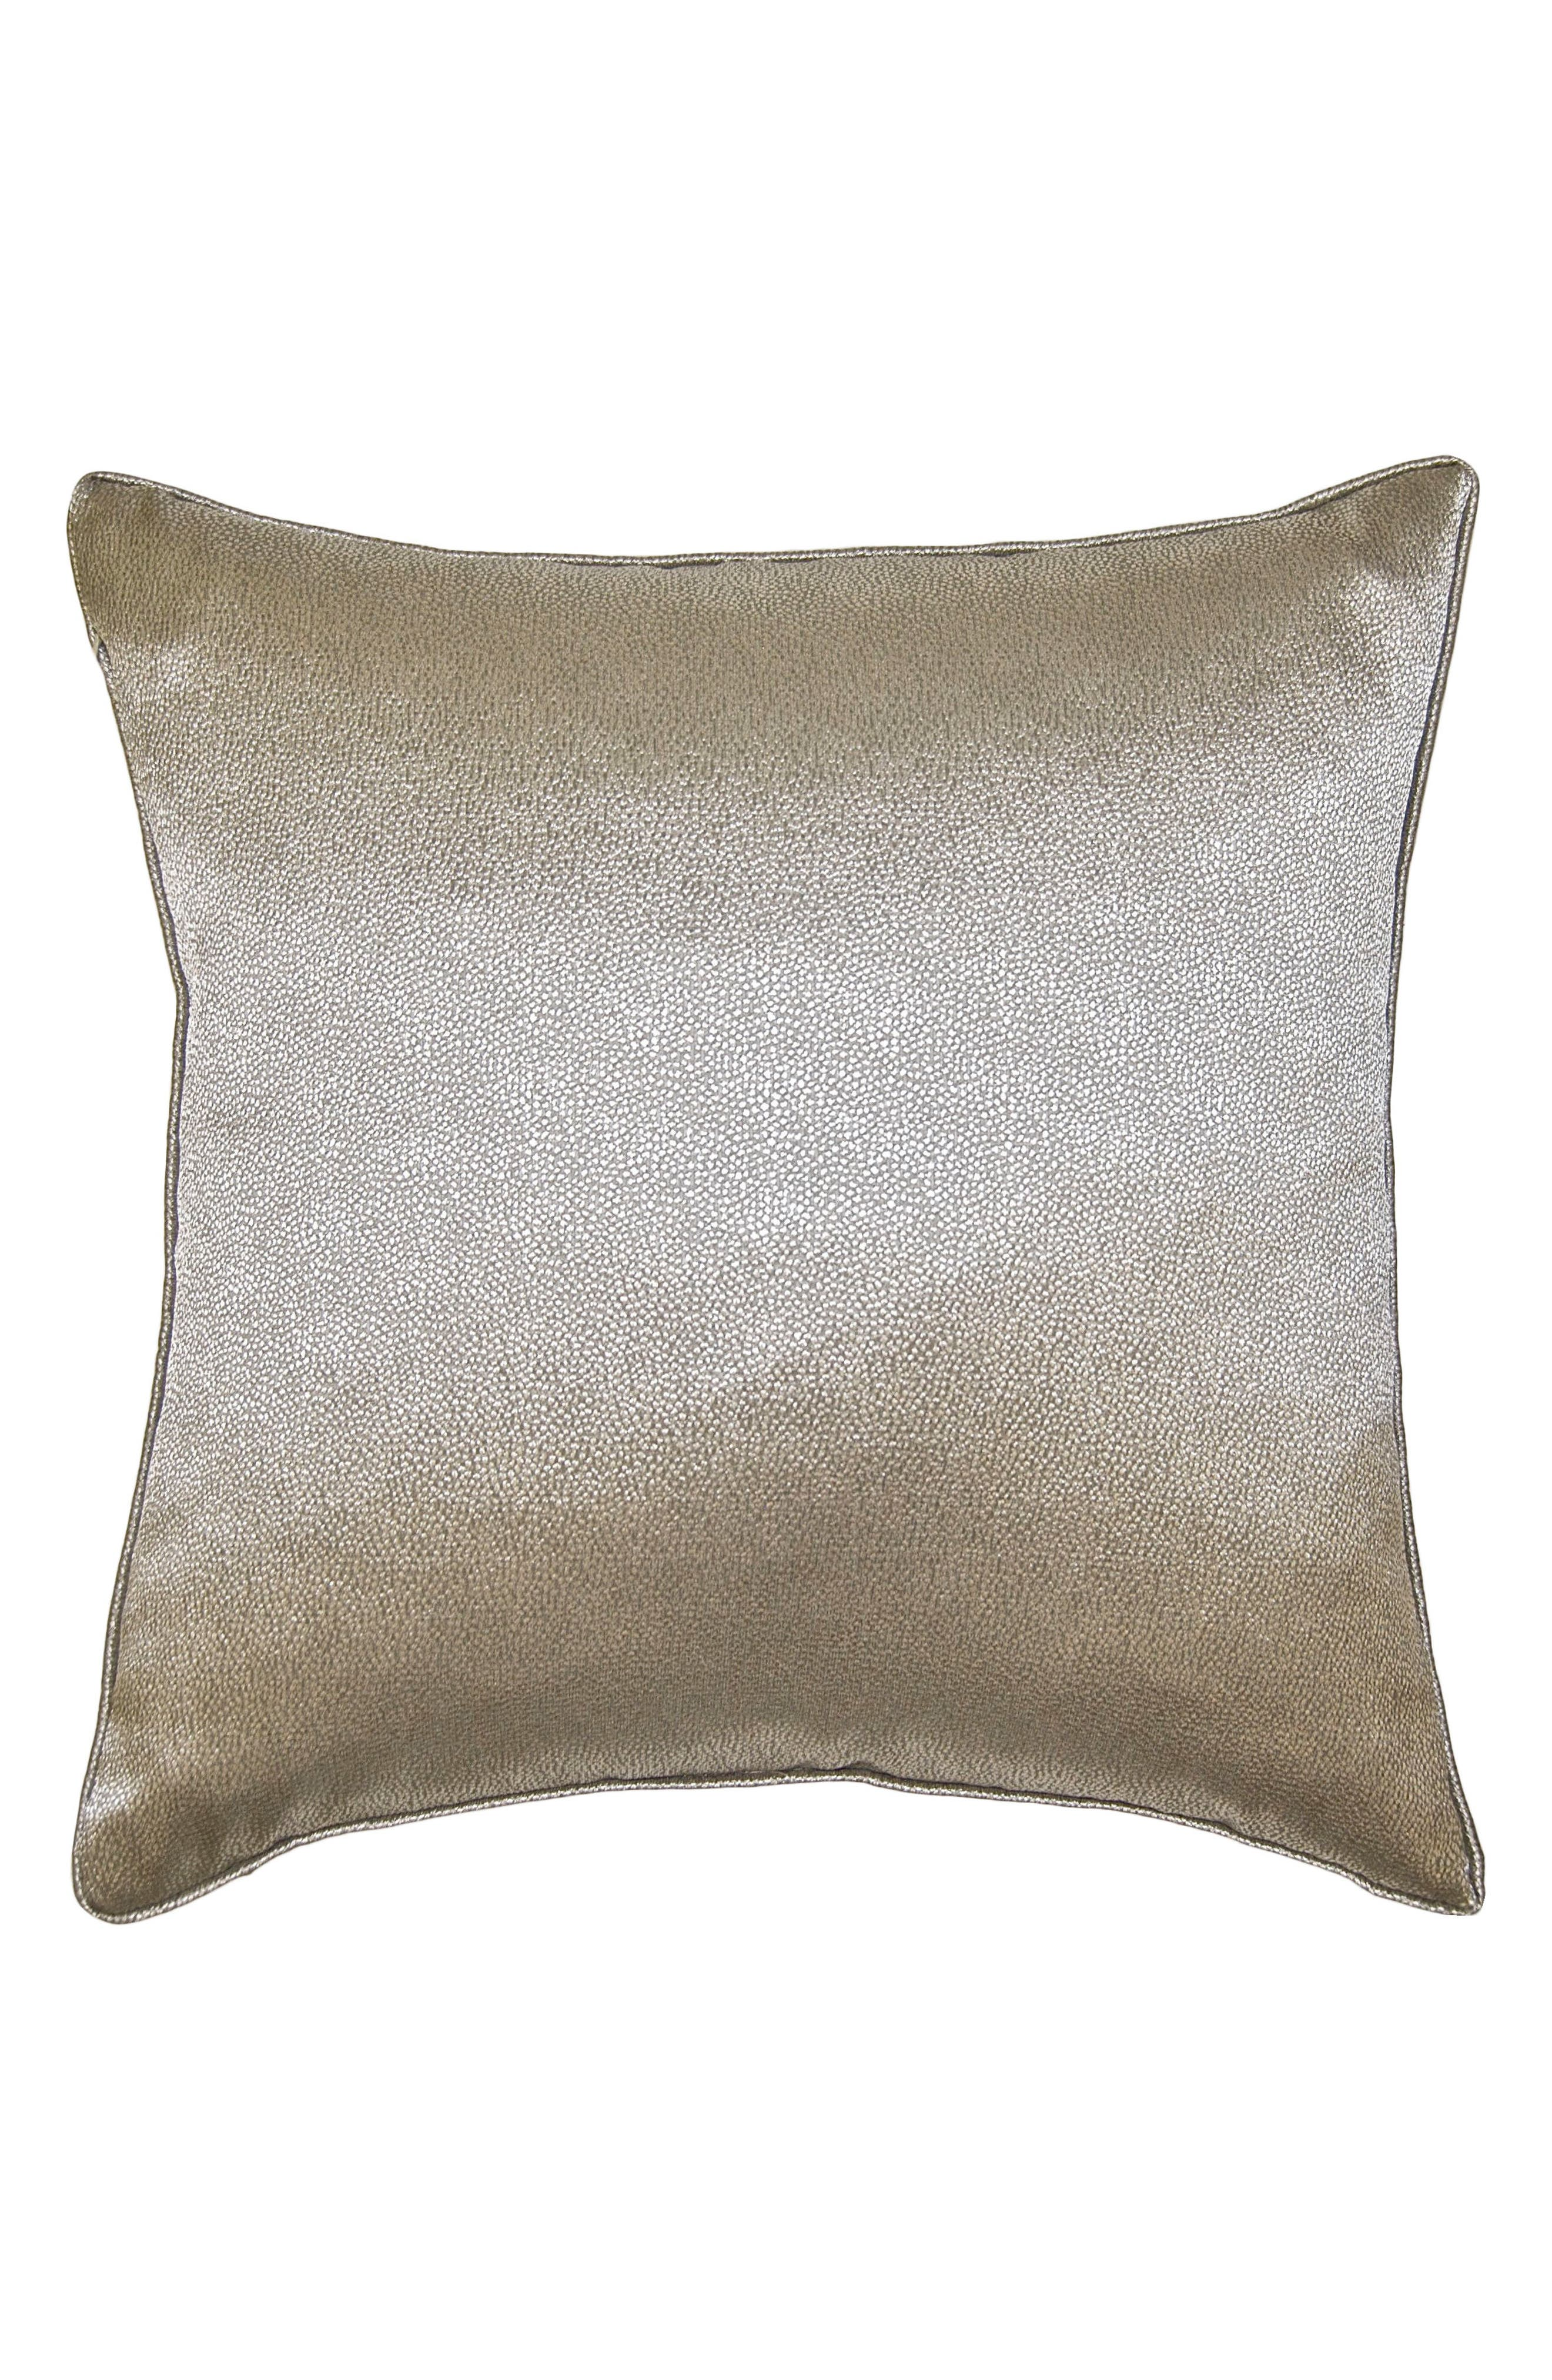 Stars Accent Pillow,                             Main thumbnail 1, color,                             Taupe